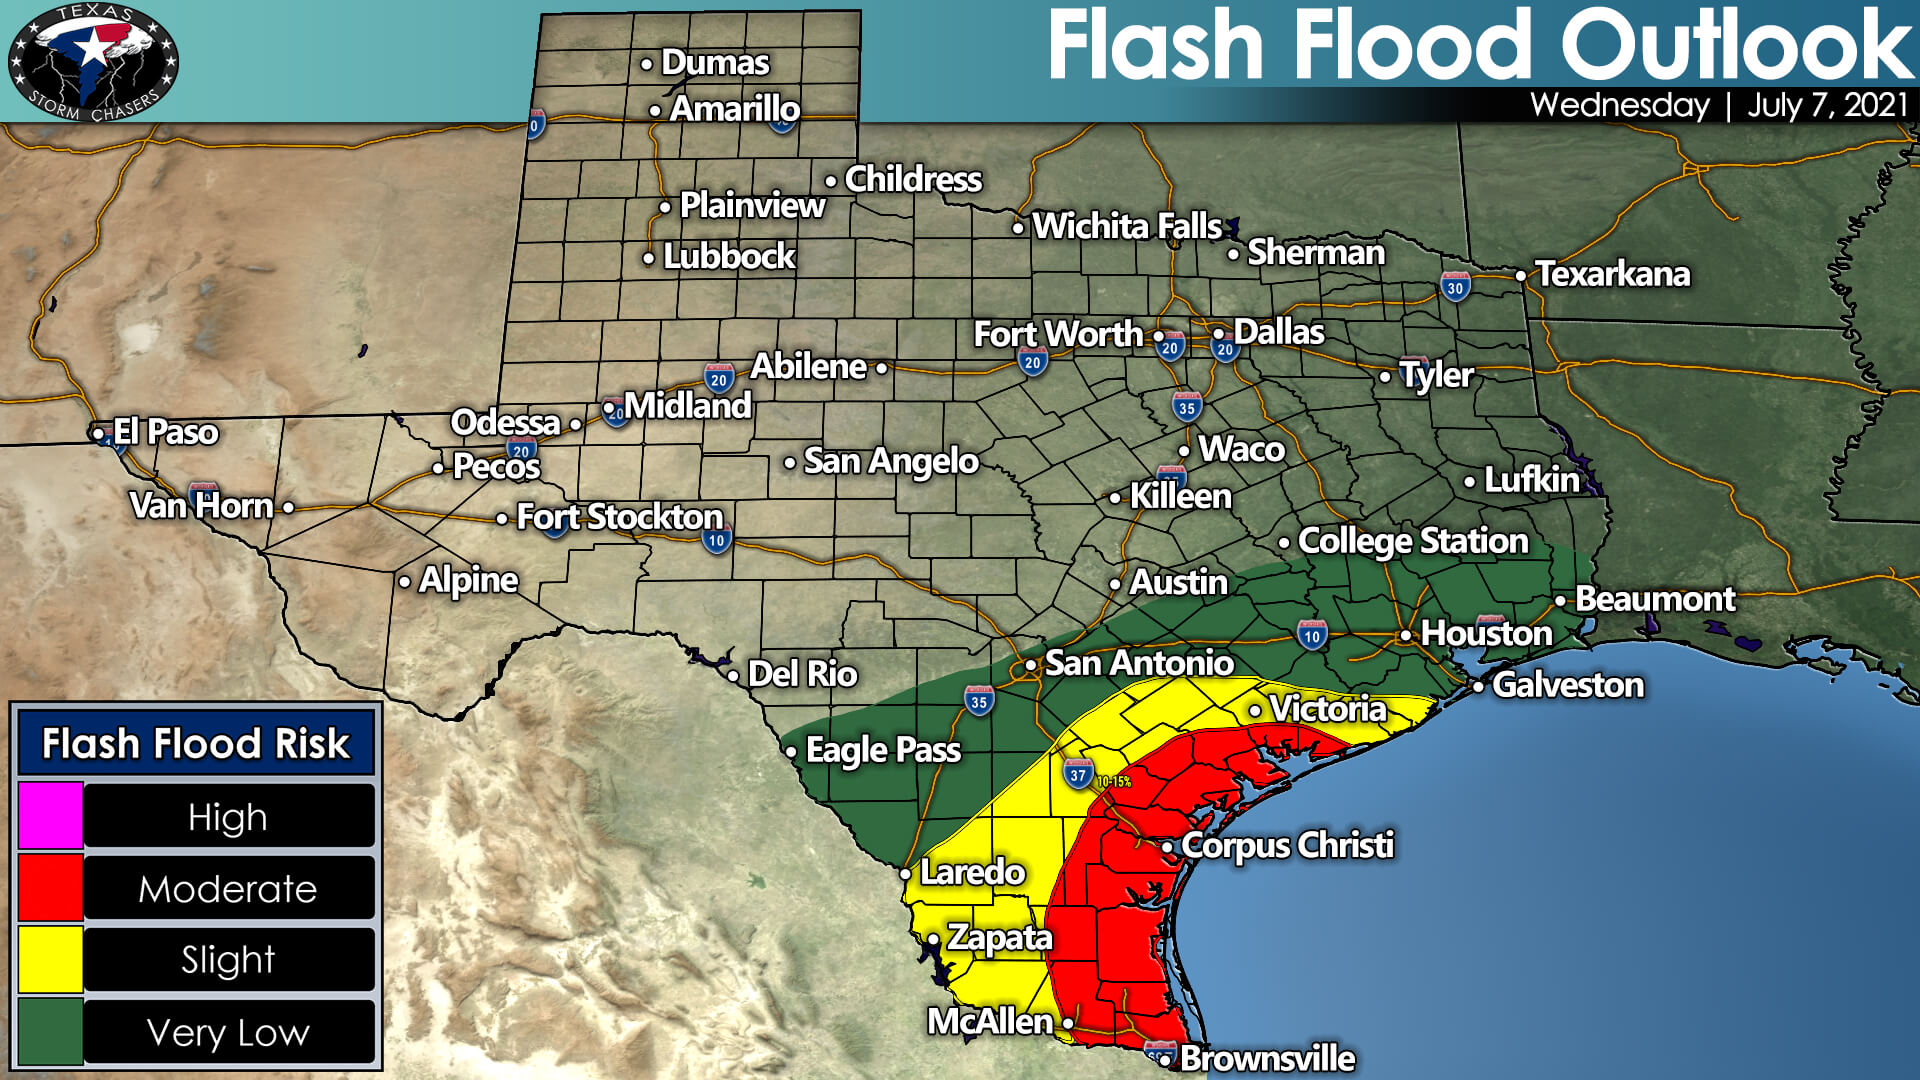 There is a moderate risk of flash flooding on Wednesday across the Middle Texas Coast, South Texas, and the Rio Grande Valley - including Corpus Christi, Brownsville, and McAllen. Comparatively lower risks of flooding exist north to Interstate 10 in Southeast Texas (Houston) to South-Central Texas (San Antonio) west to Eagle Pass.